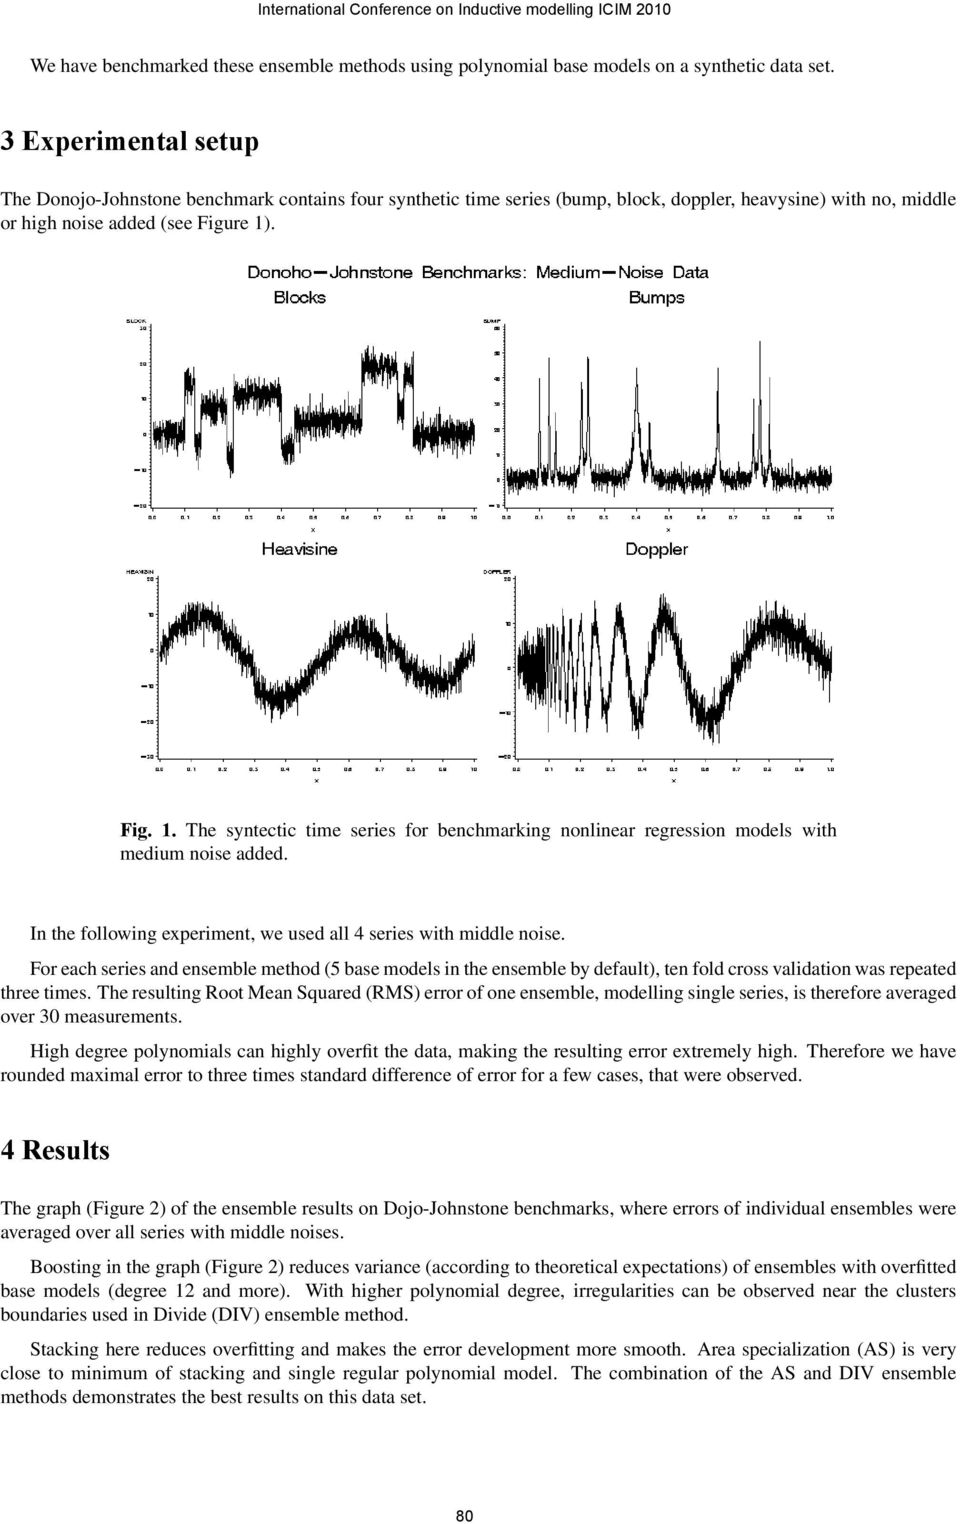 . Fig. 1. The syntectic time series for benchmarking nonlinear regression models with medium noise added. In the following experiment, we used all 4 series with middle noise.